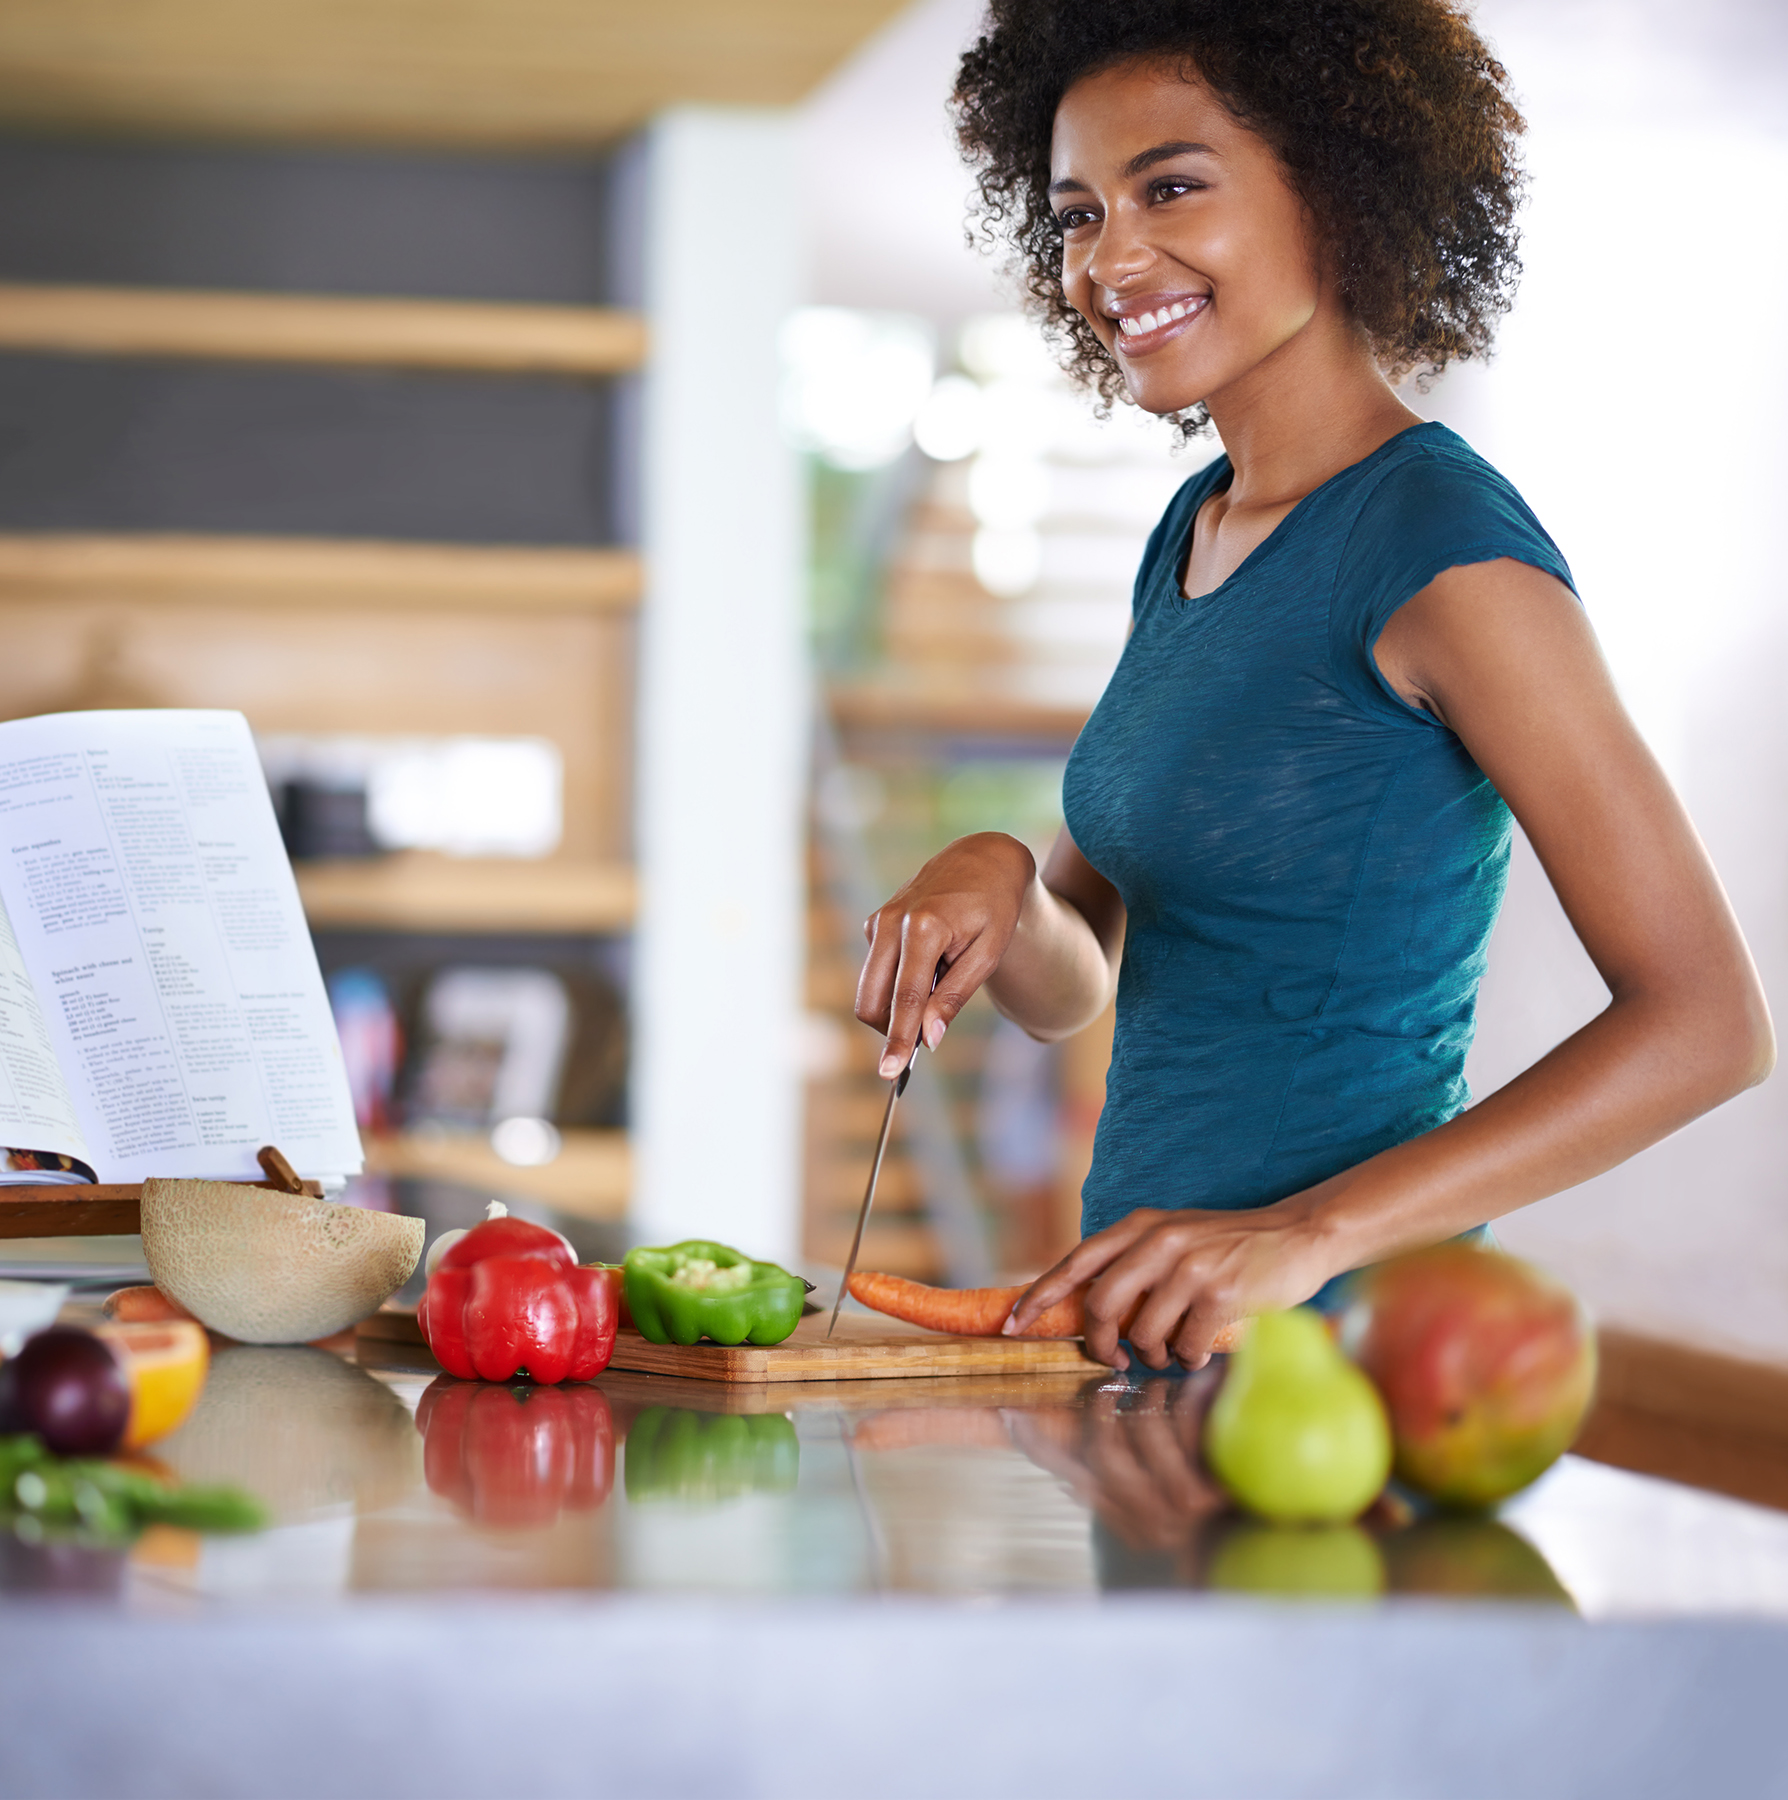 Woman preparing healthy food from cookbook